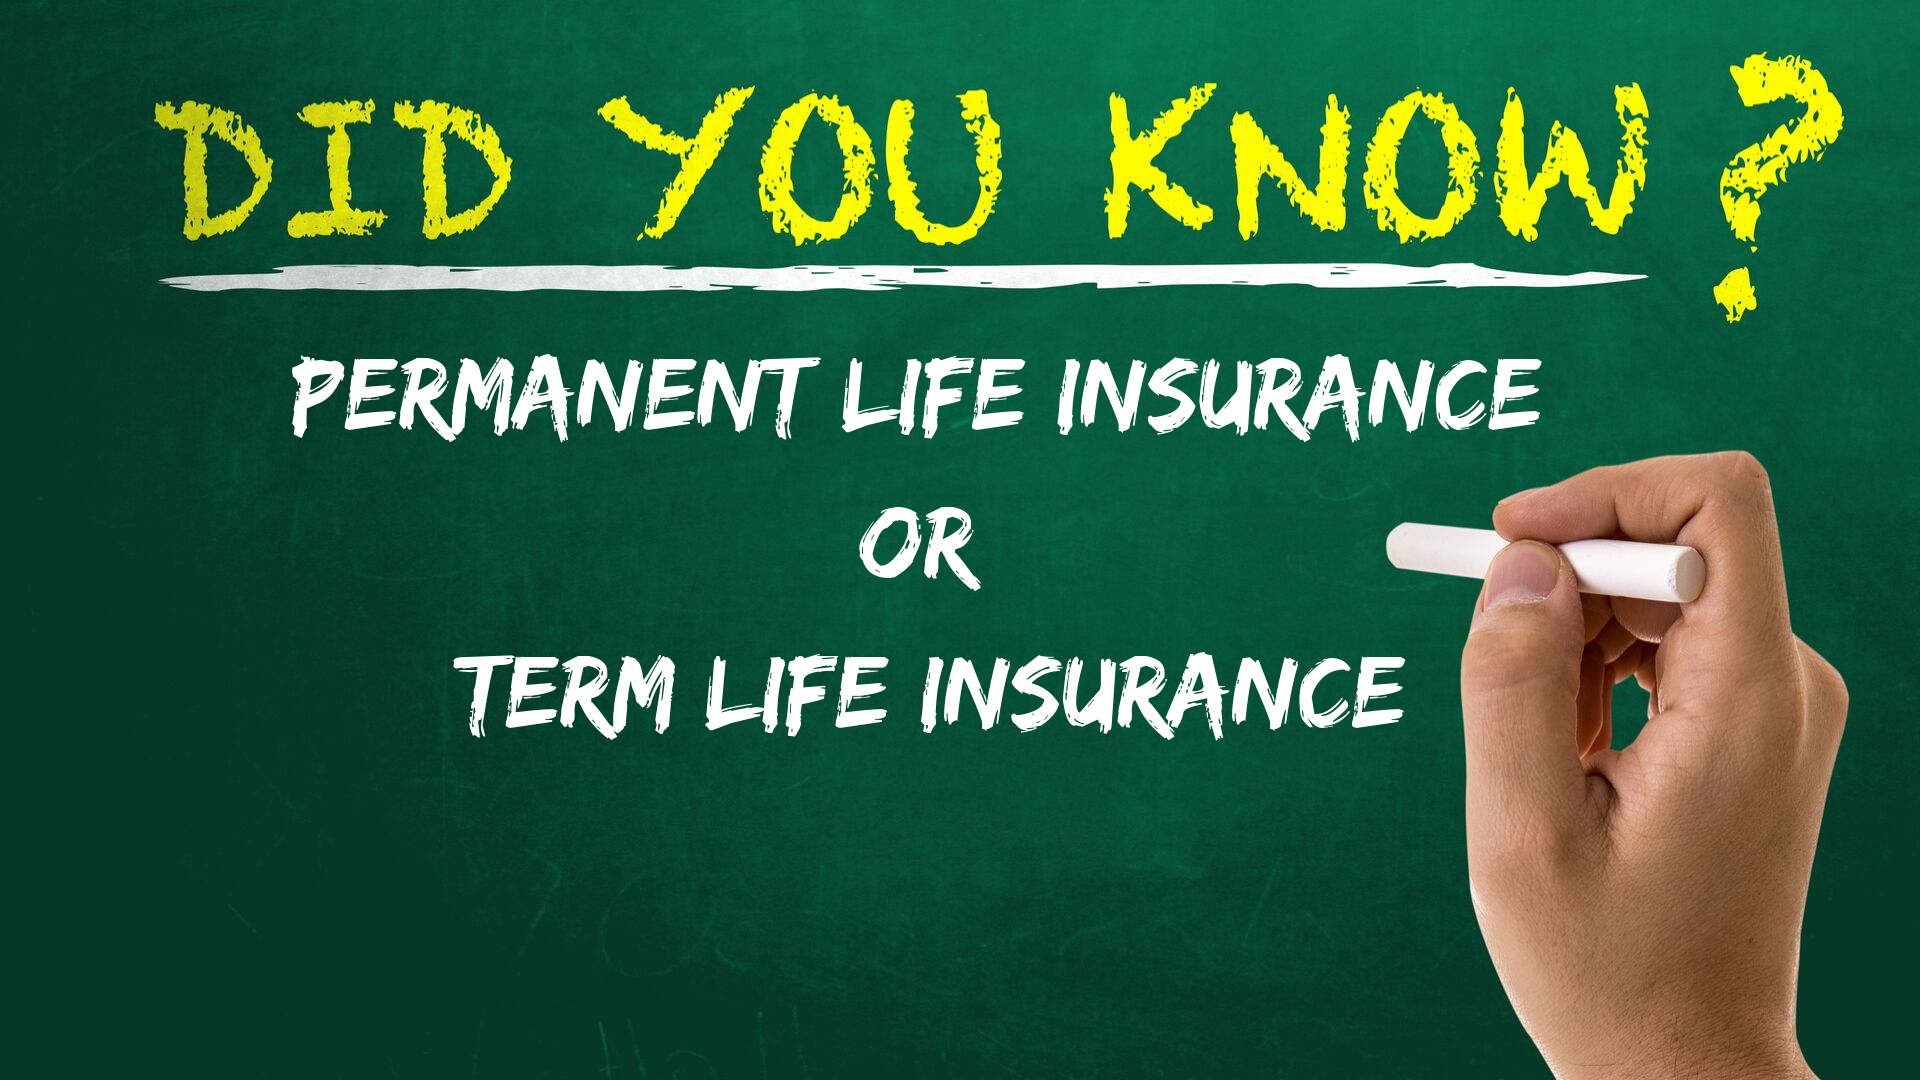 Permanent Life Insurance or Term Life Insurance - Things you need to know